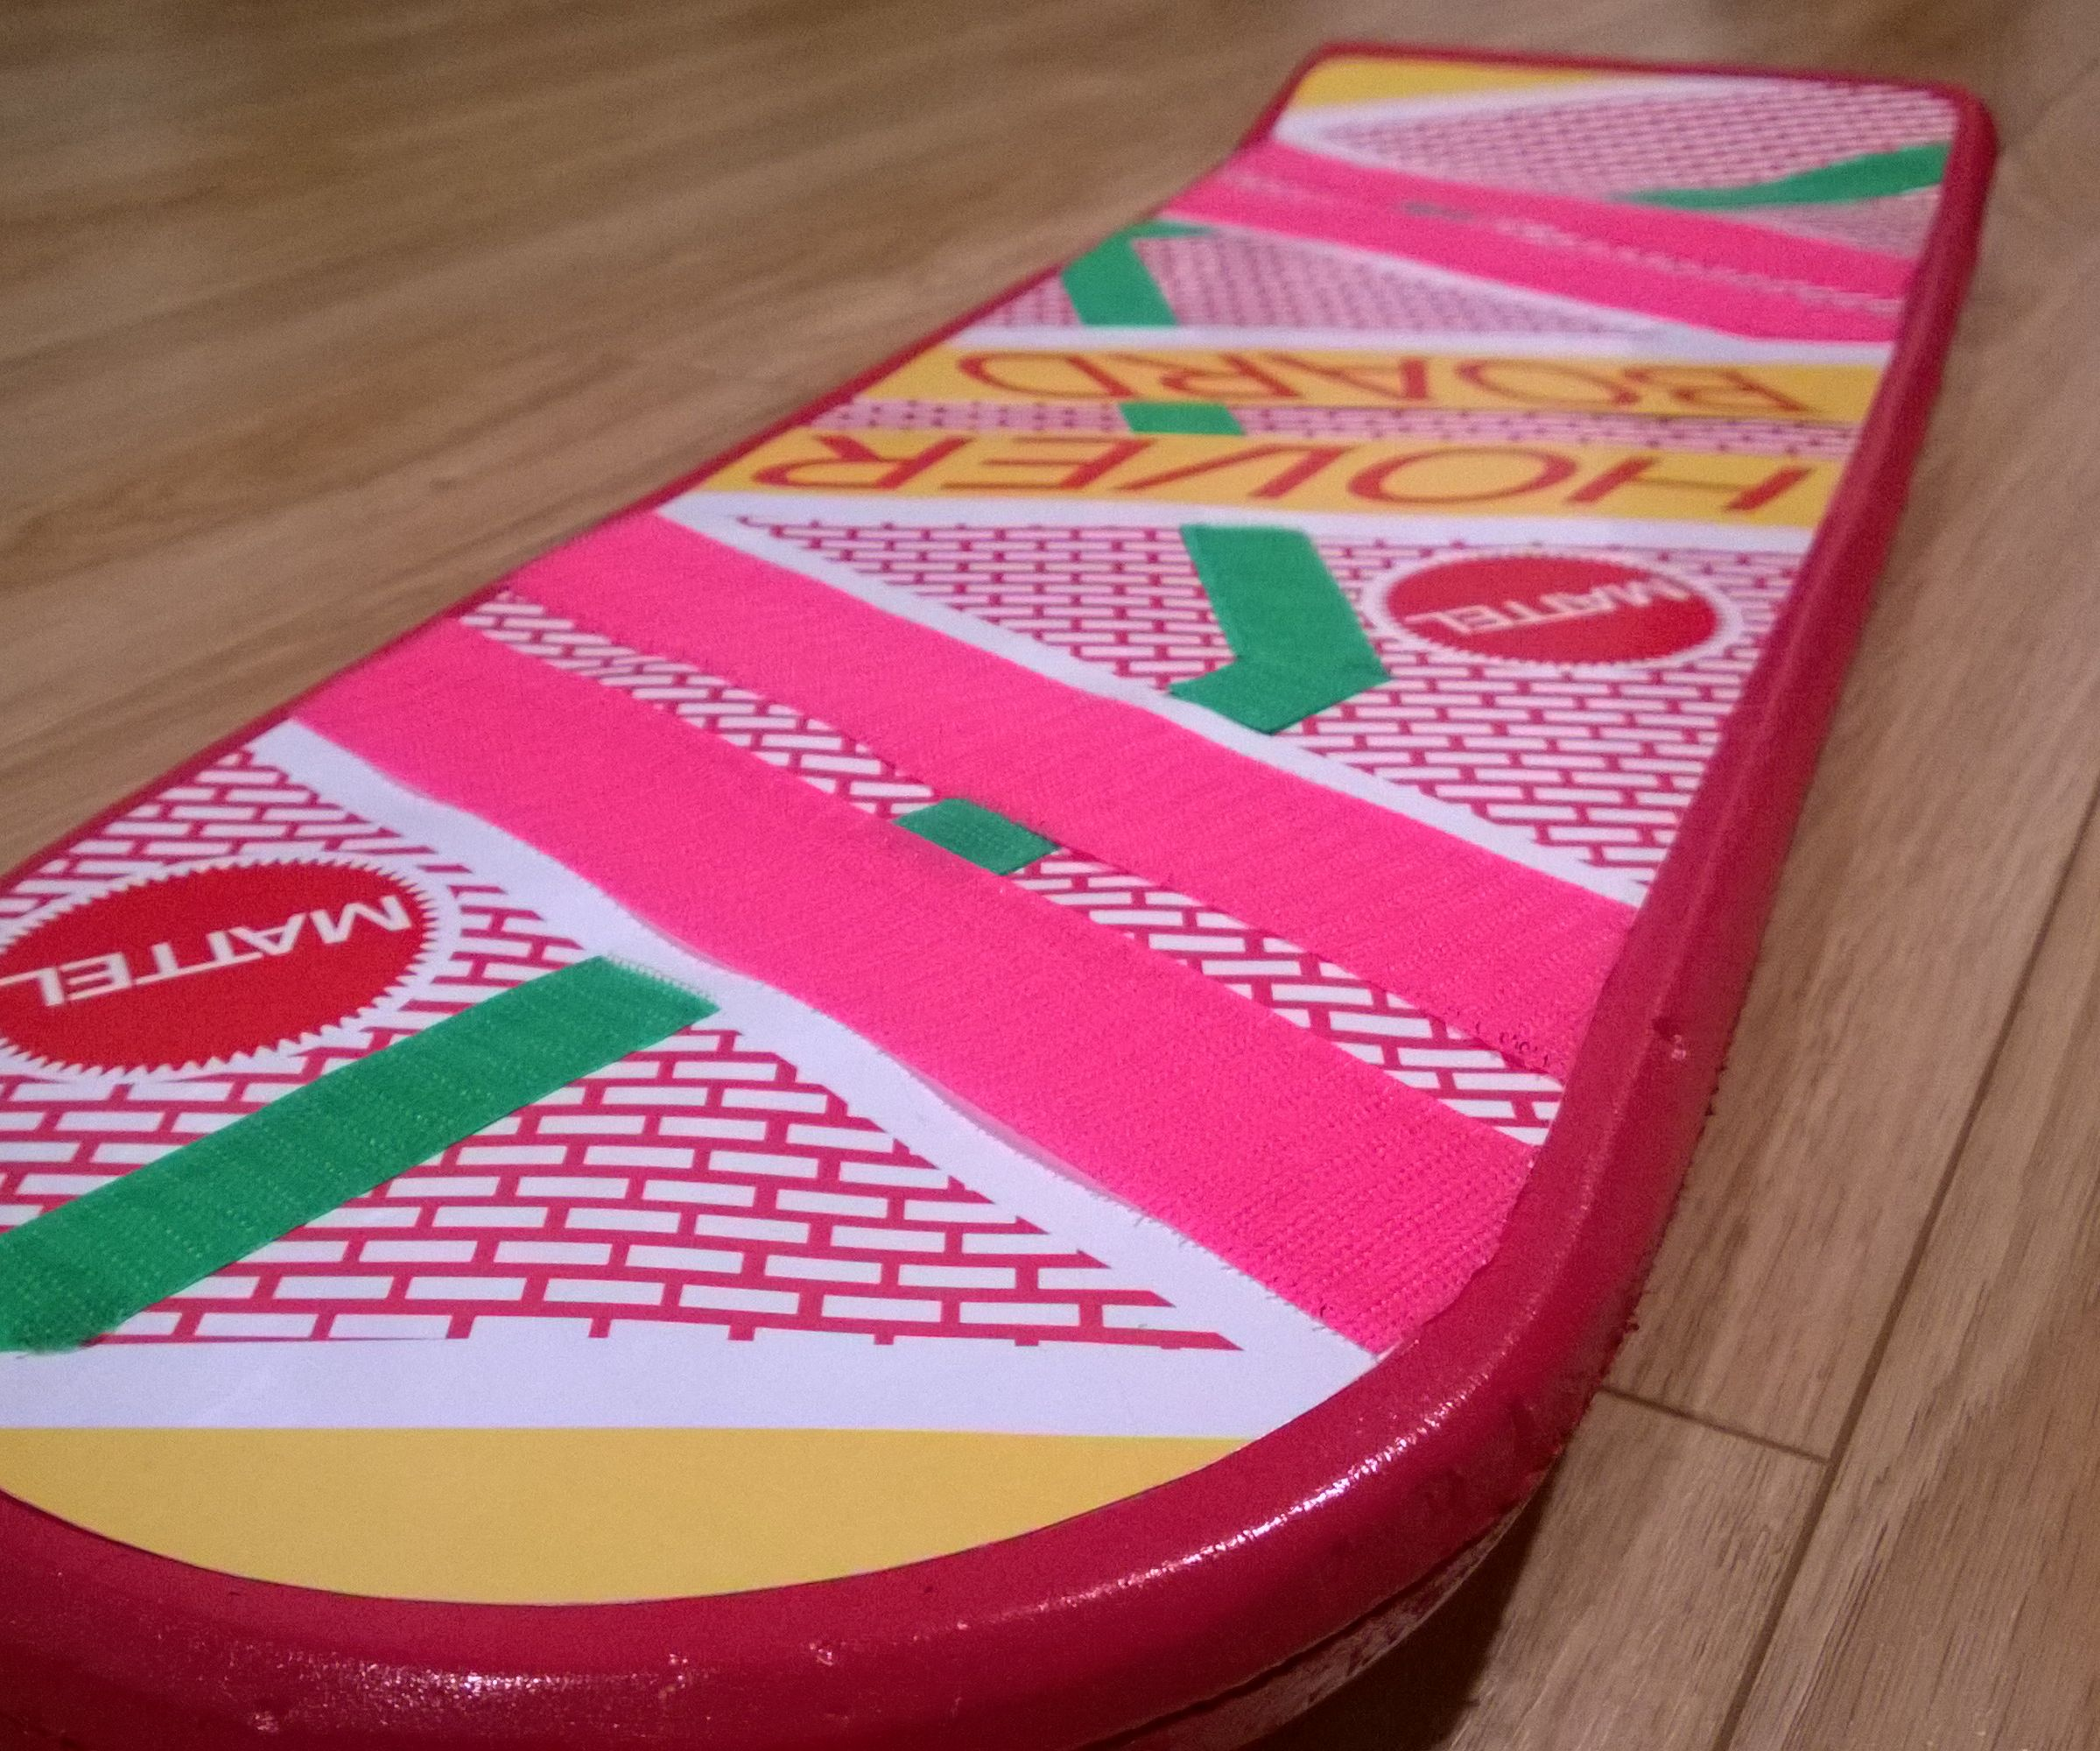 Hoverboard - Back to the future 2